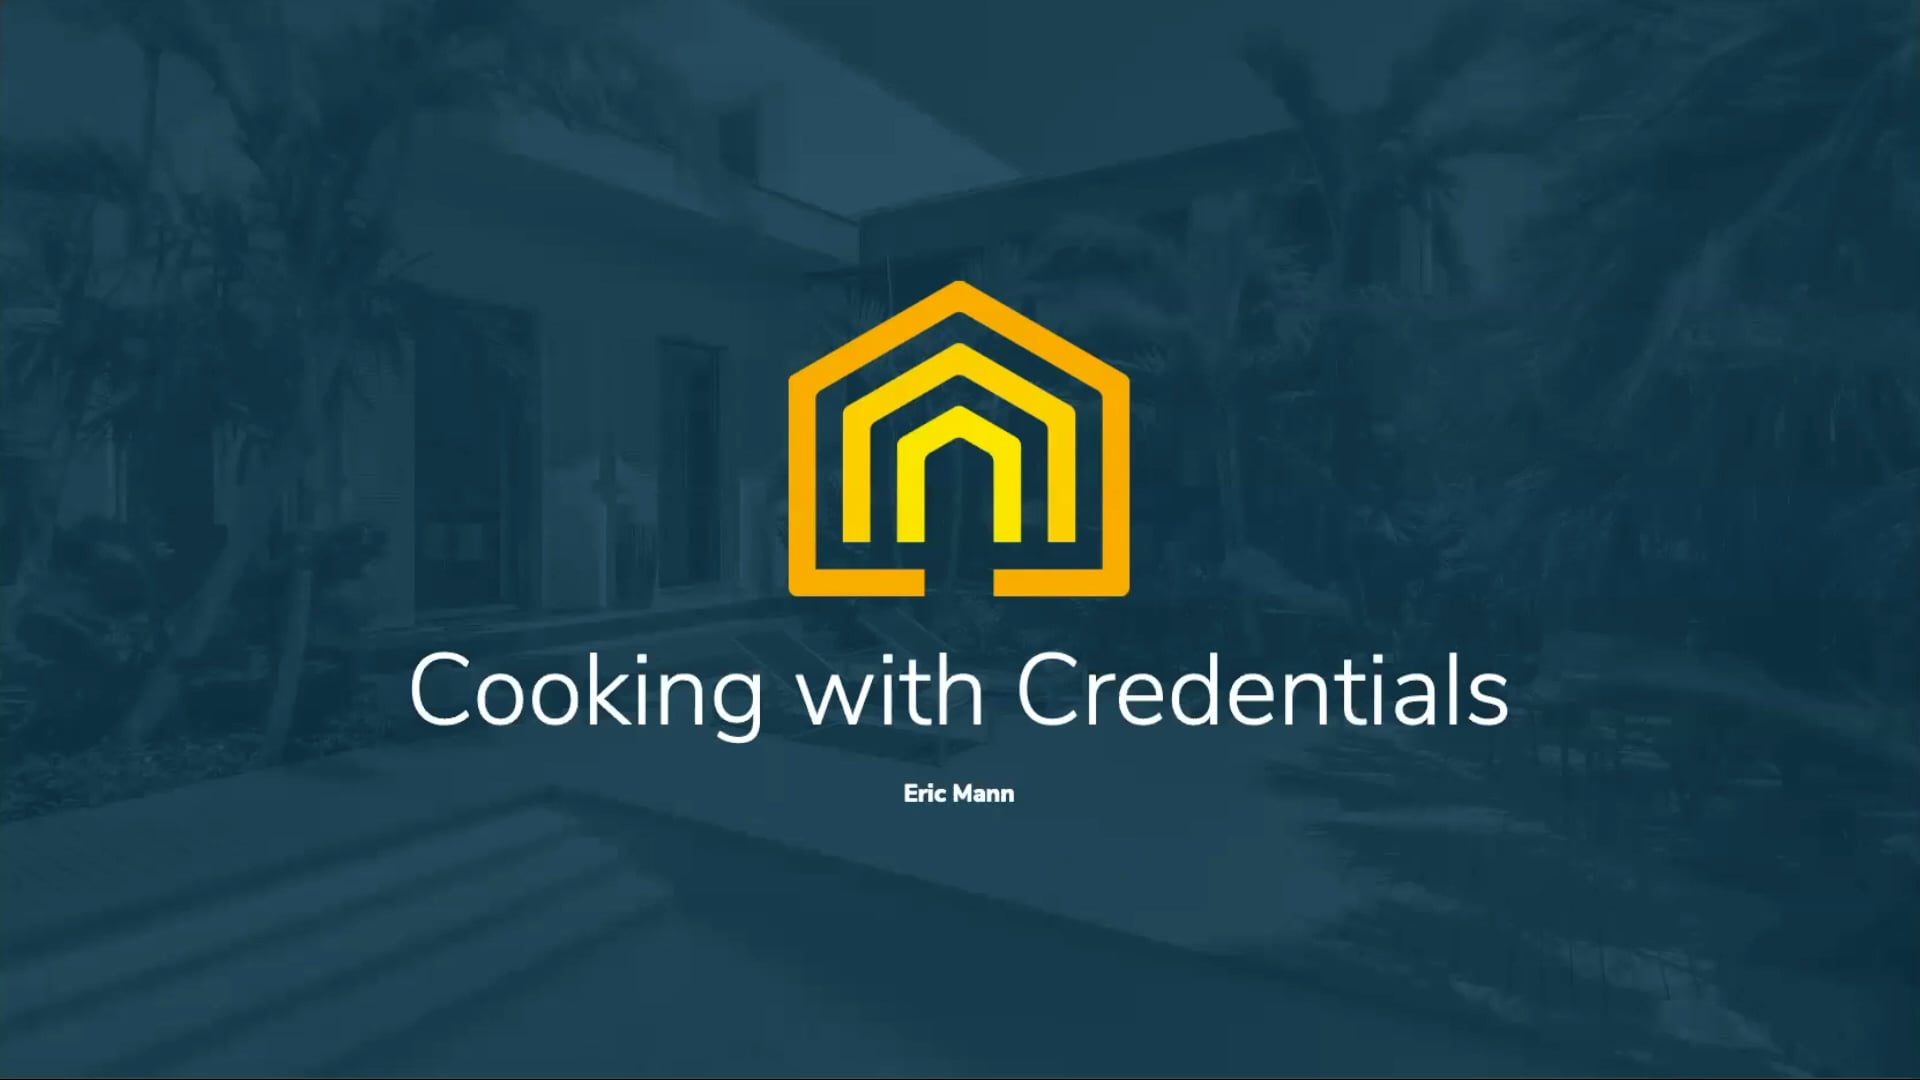 Cooking with Credentials